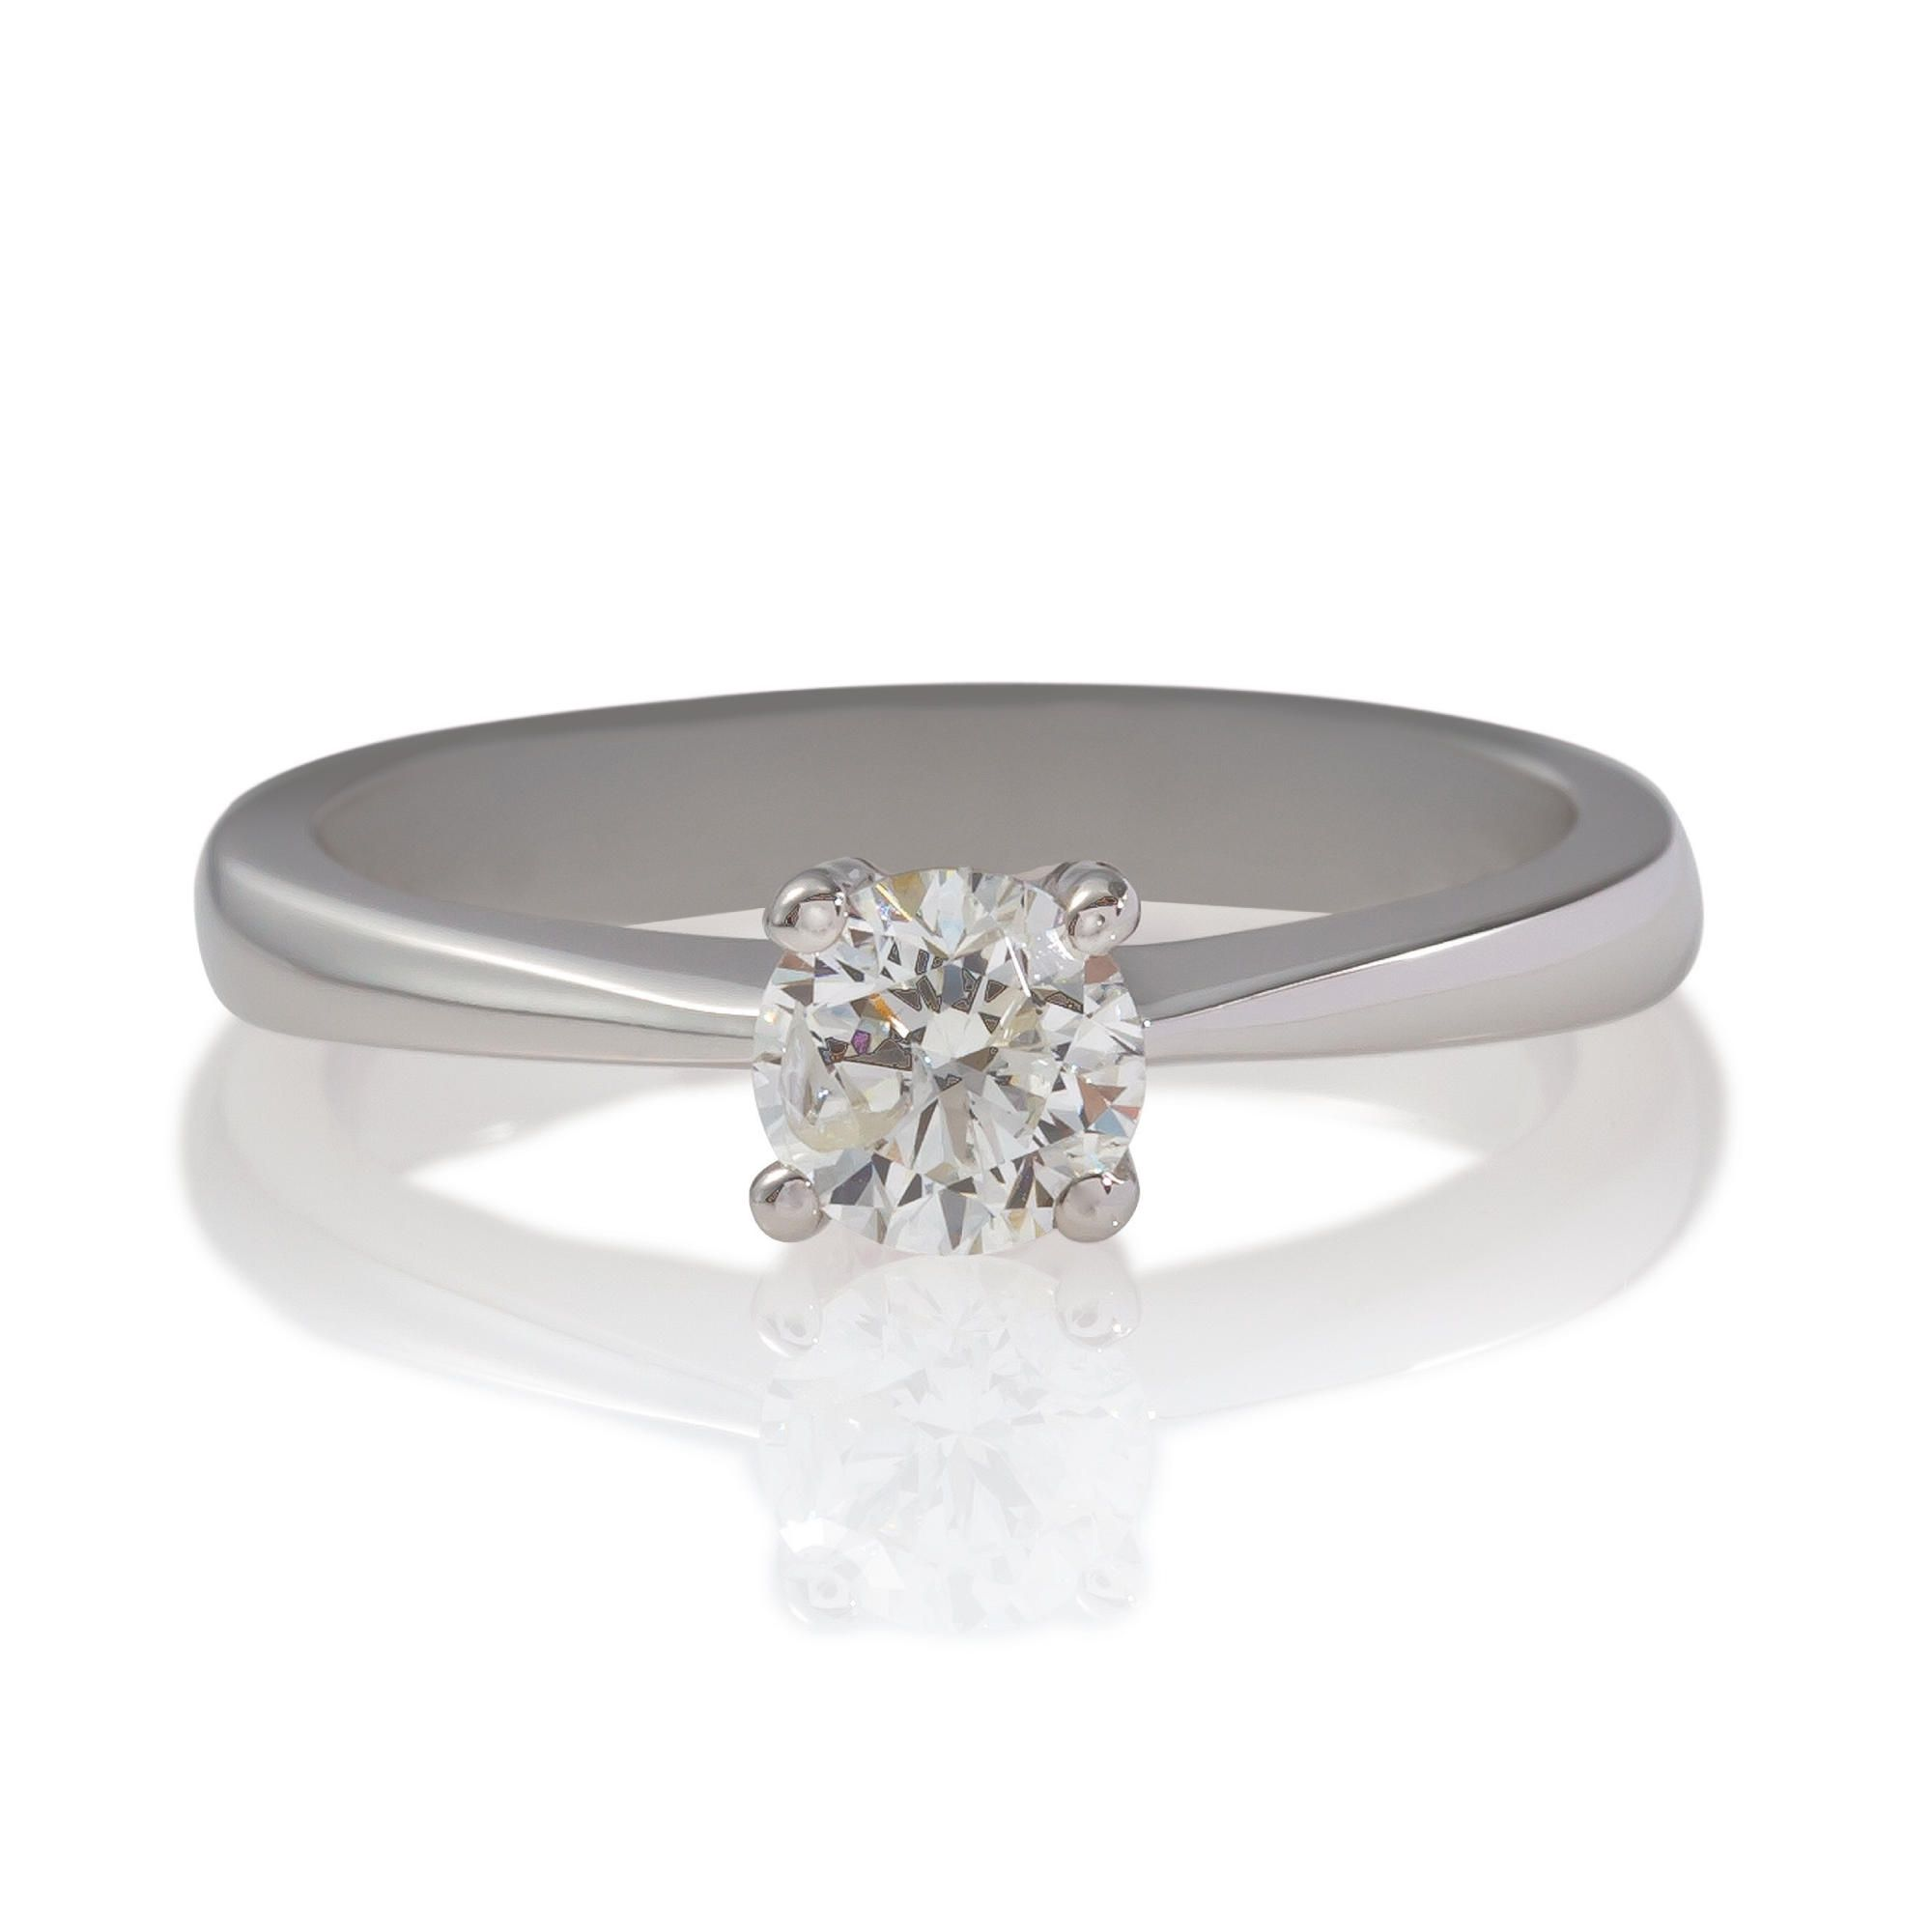 18ct White Gold 50Pt Diamond Solitaire Ring, P at Tesco Direct